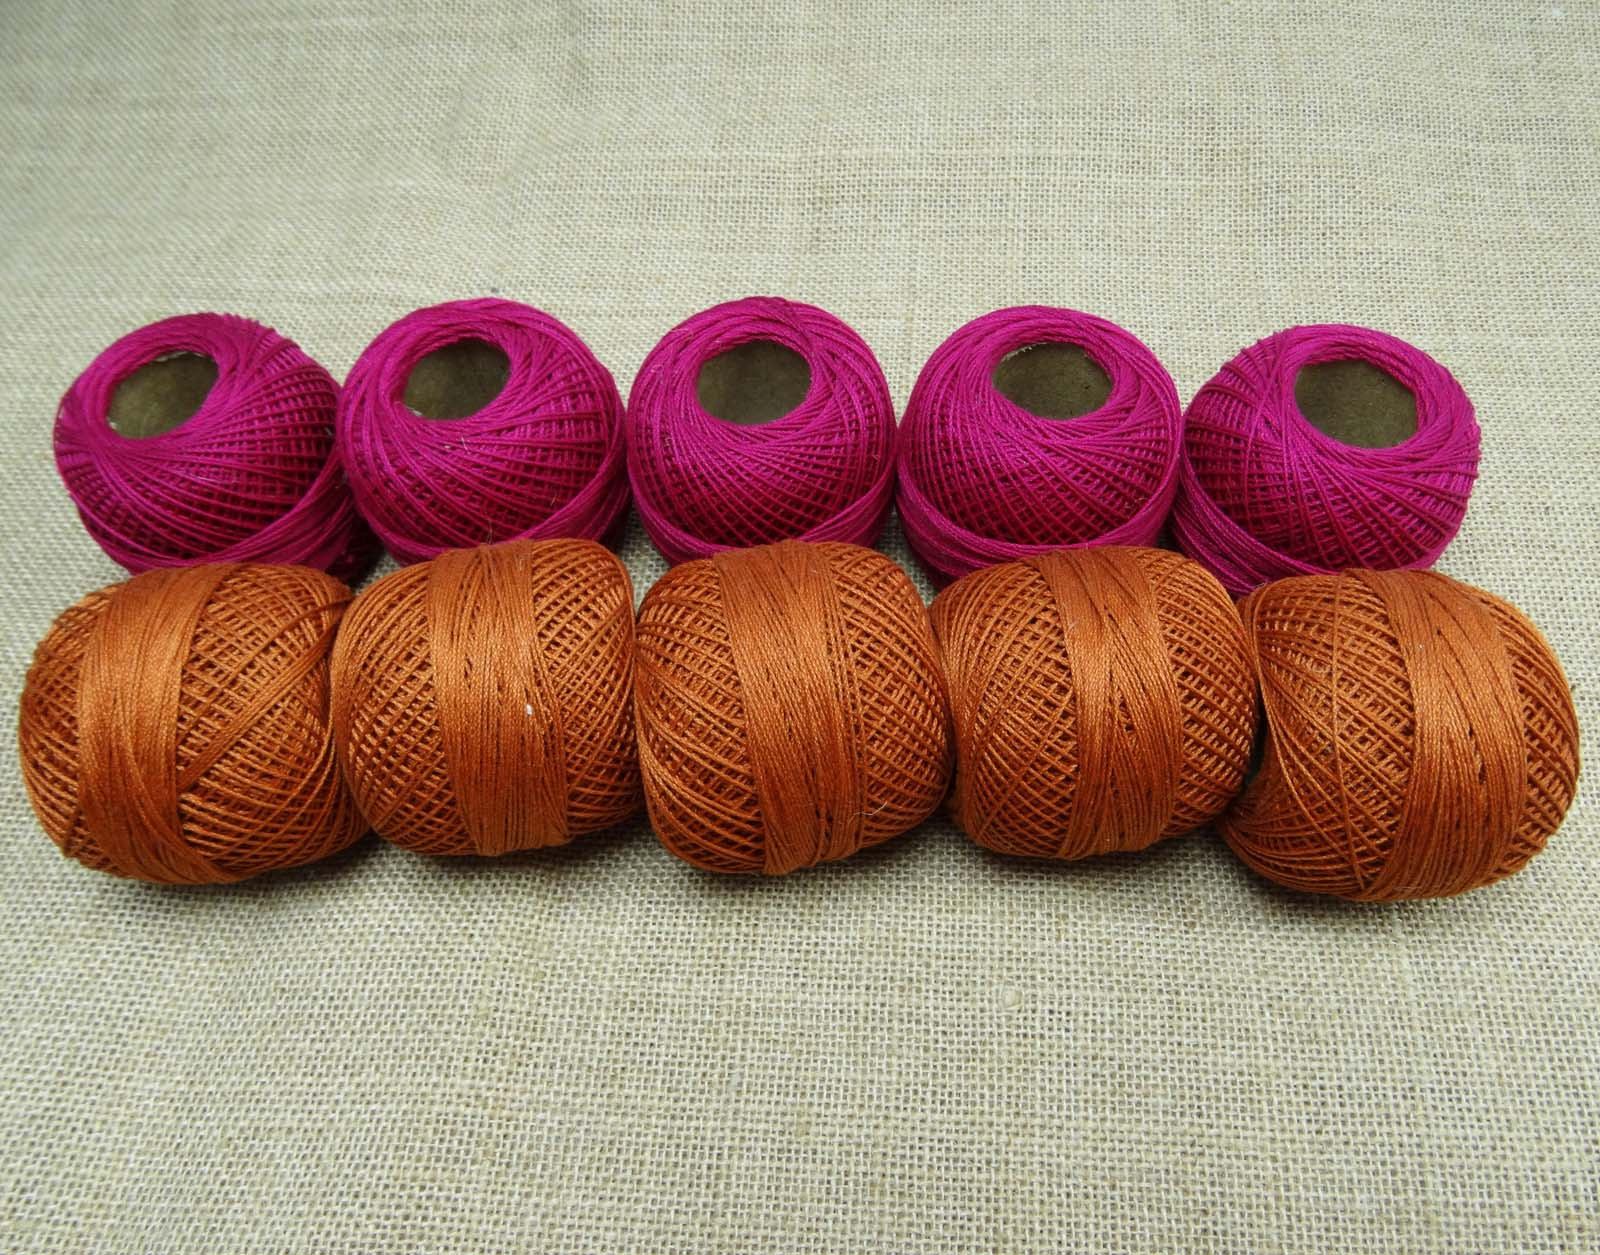 Lovely orange Knitting Skein Yarn Ball Tatting Crochet Cotton Crochet Cotton Thread Of New 50 Pics Crochet Cotton Thread